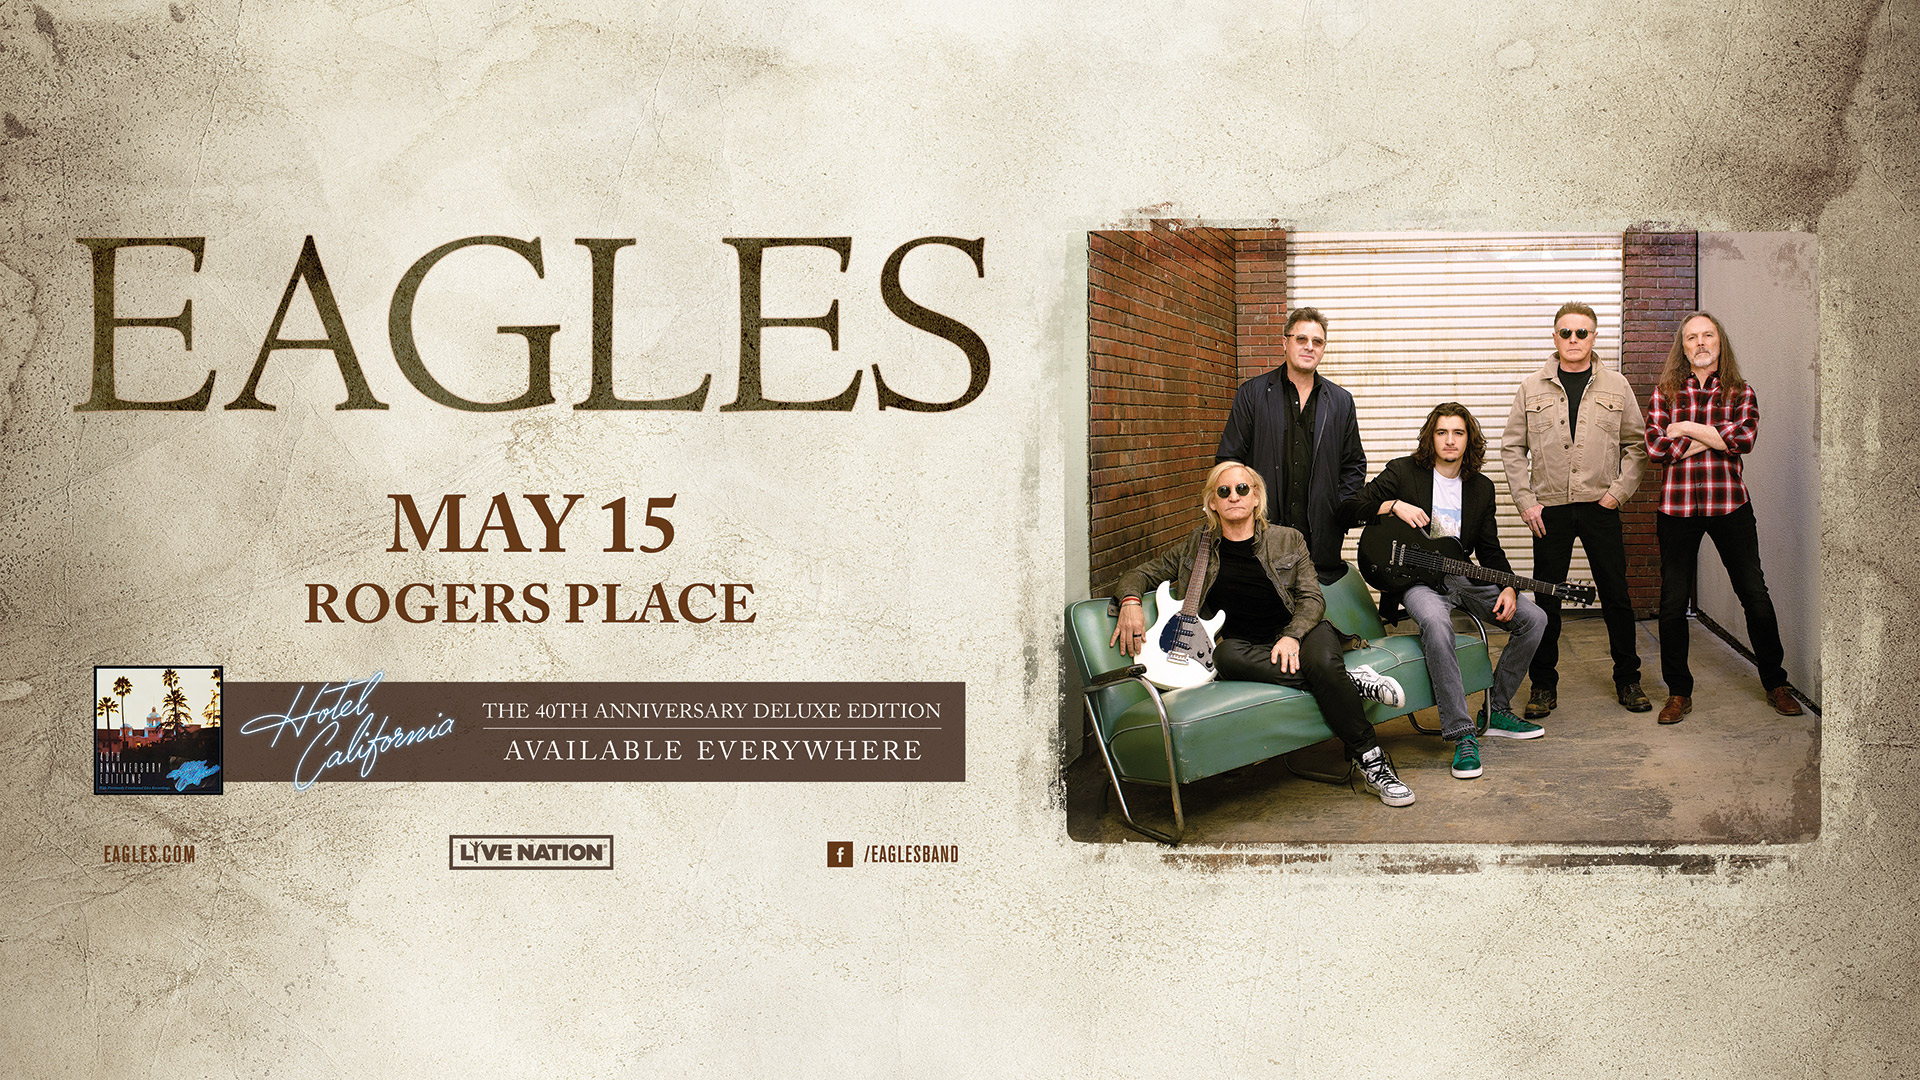 Eagles: May 15, 2018 | Rogers Place